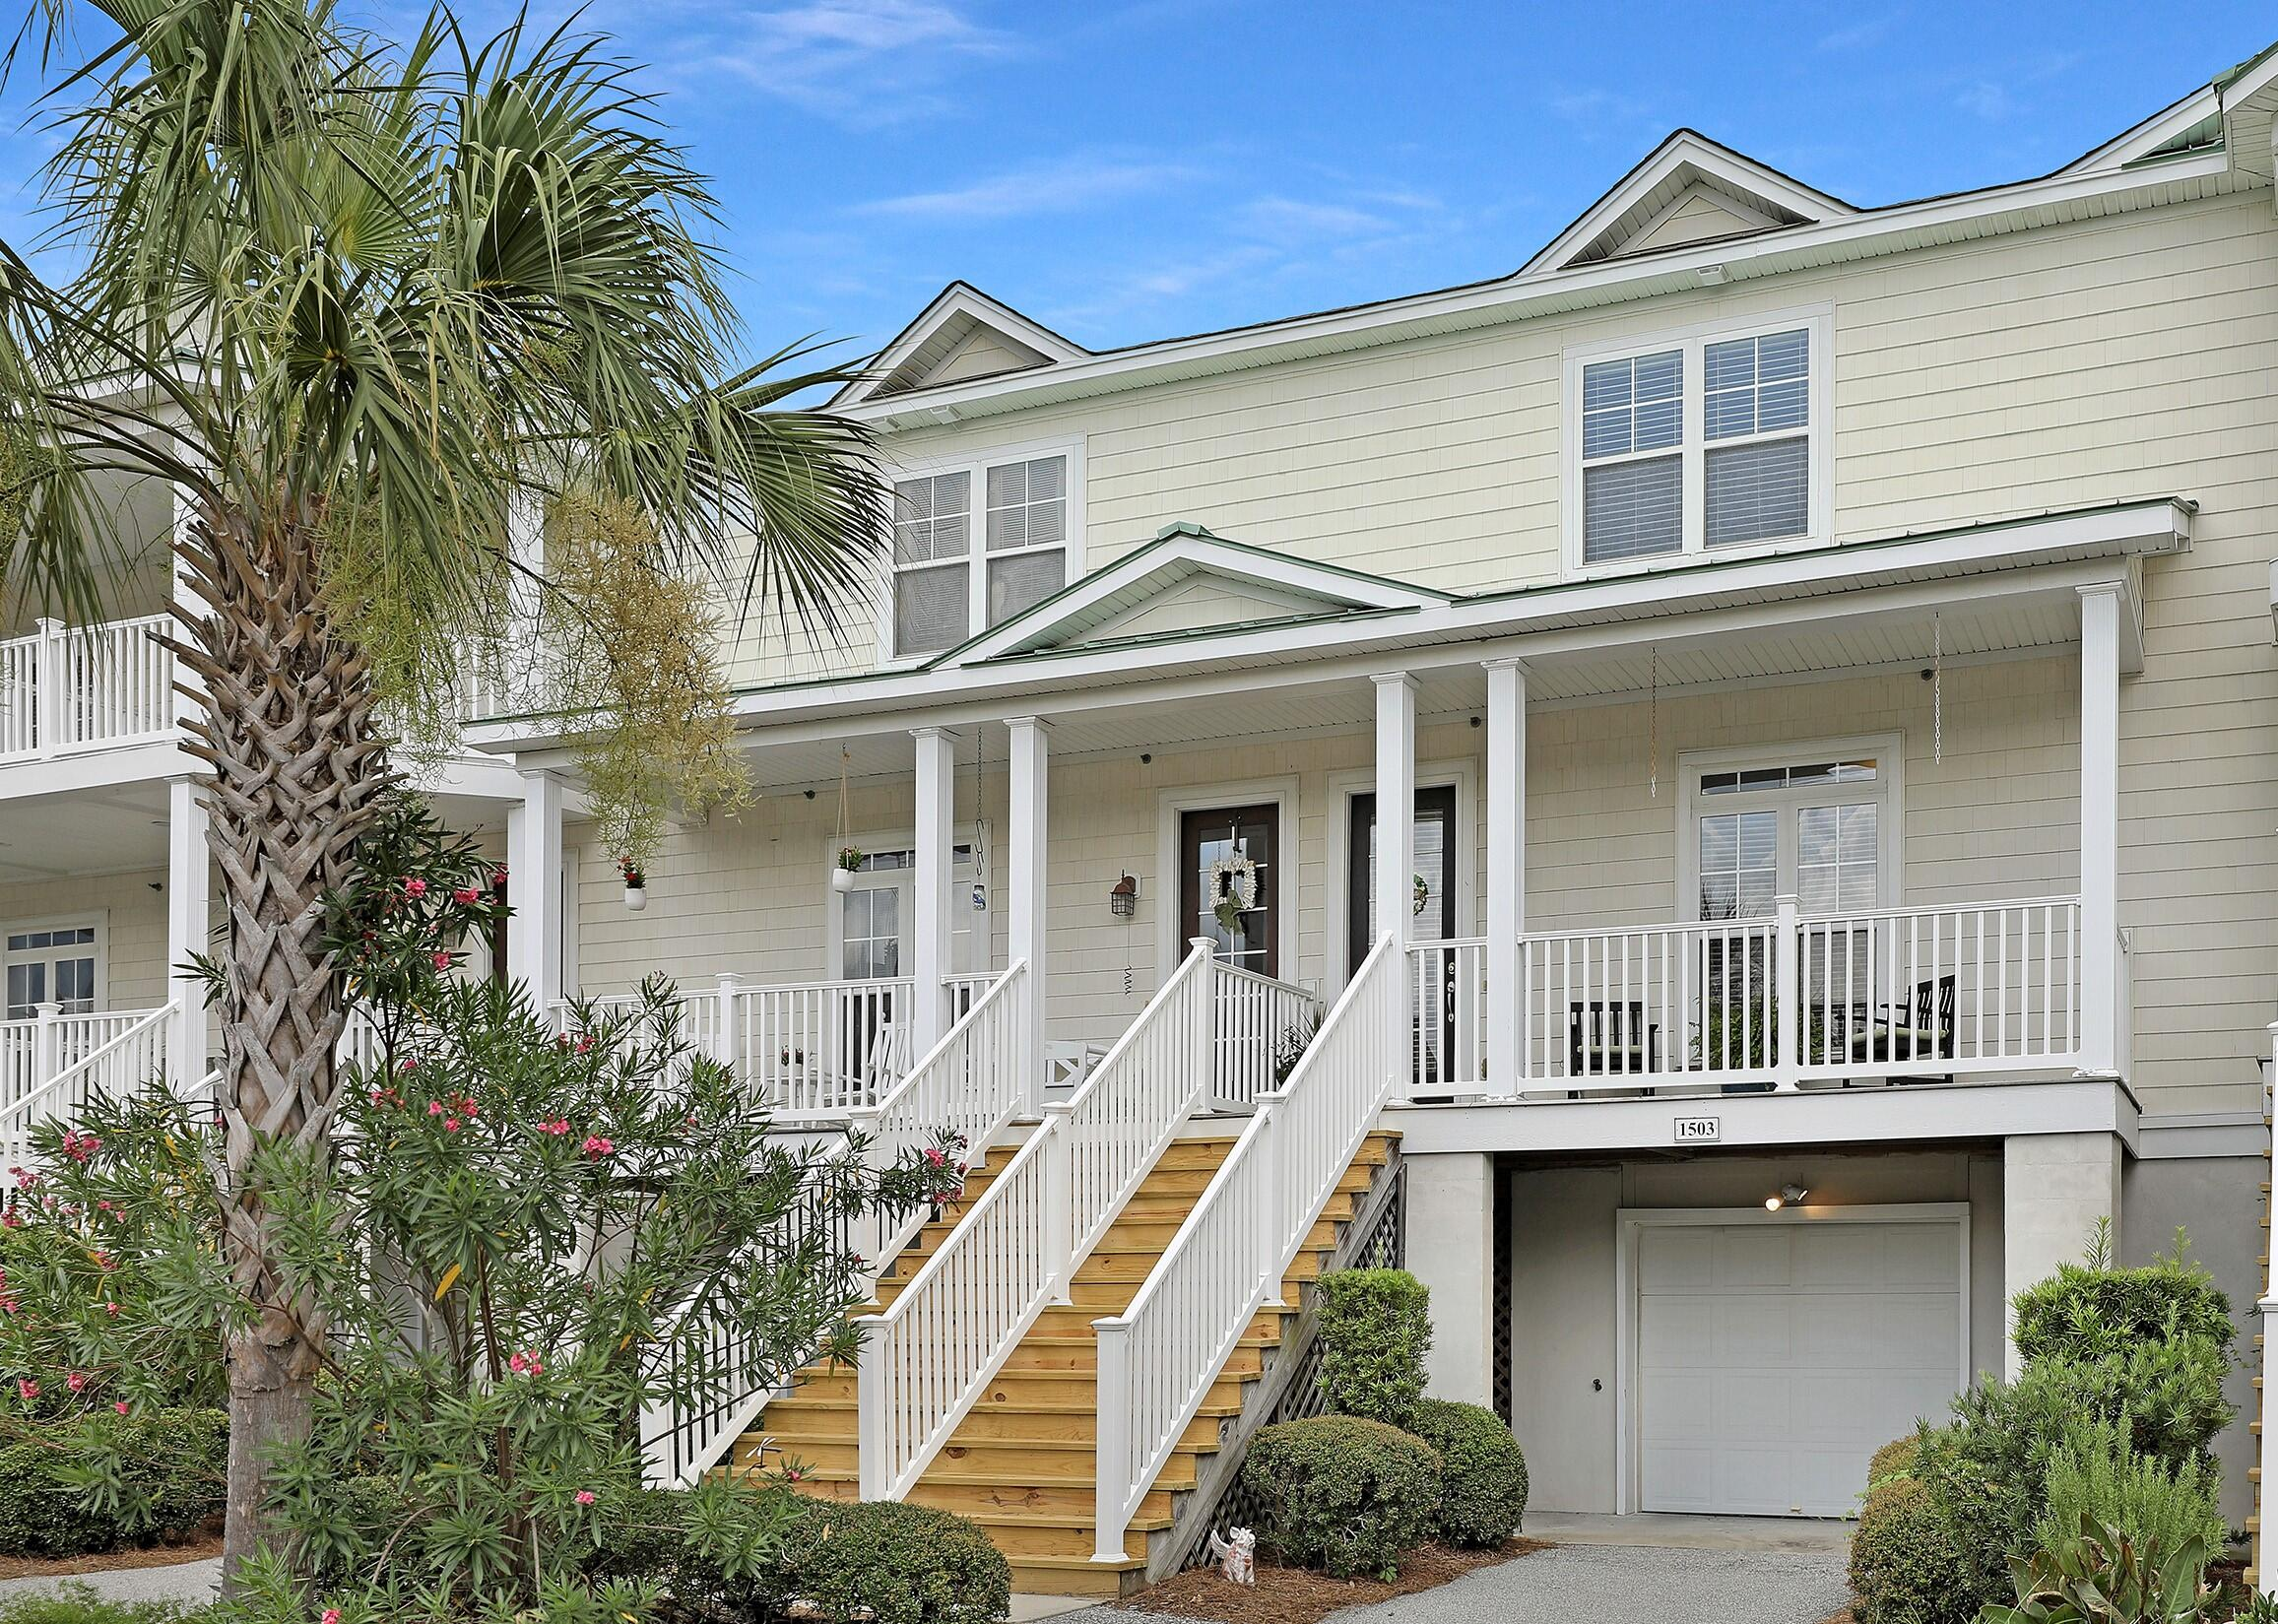 This beautiful 2 bedroom, 2 1/2 bathroom townhome is in The Retreat in Charleston National. Tucked away between holes 5 and 6 on a pond with a fountain. Huge tandem garage at ground level runs the entire length of the home. Elevator shaft is built in the floor plan should you wish to add one some day. The first floor and staircase have real hardwood floors. The kitchen is updated with granite countertops  and stainless appliances with a butler's pantry that connects it to the dining room. The main living area is bright and open and a large screened porch offers plenty of room and tranquil, relaxing views. Upstairs the guest bedroom has it's own full bathroom. The master suite is spacious and the en suite has a soaker tub, dual vanities, a shower and a large walk-in closet.